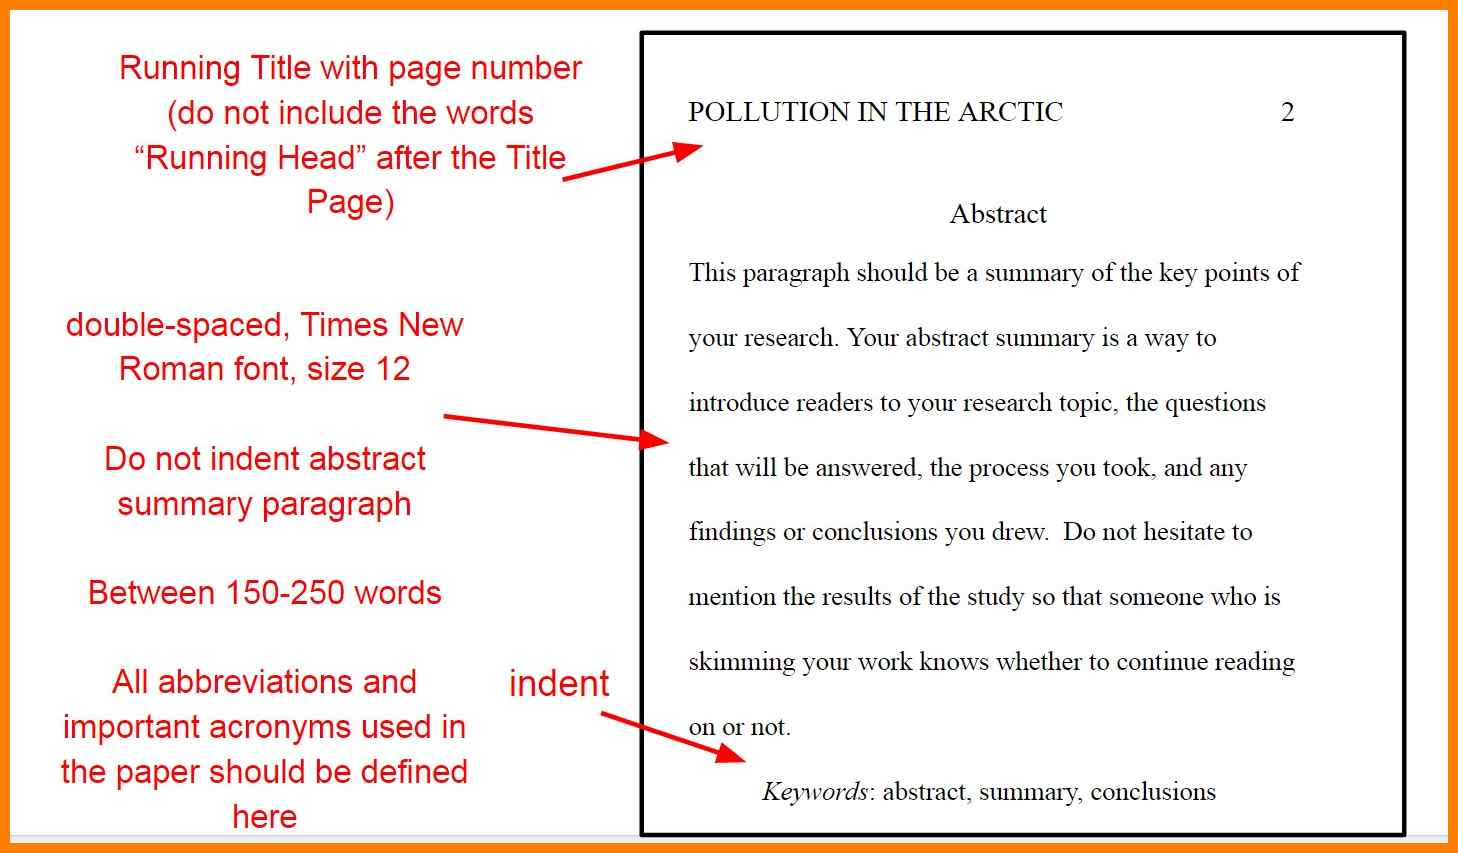 018 Apa Essay Format Apaabstractyo Font Size Stunning College Full